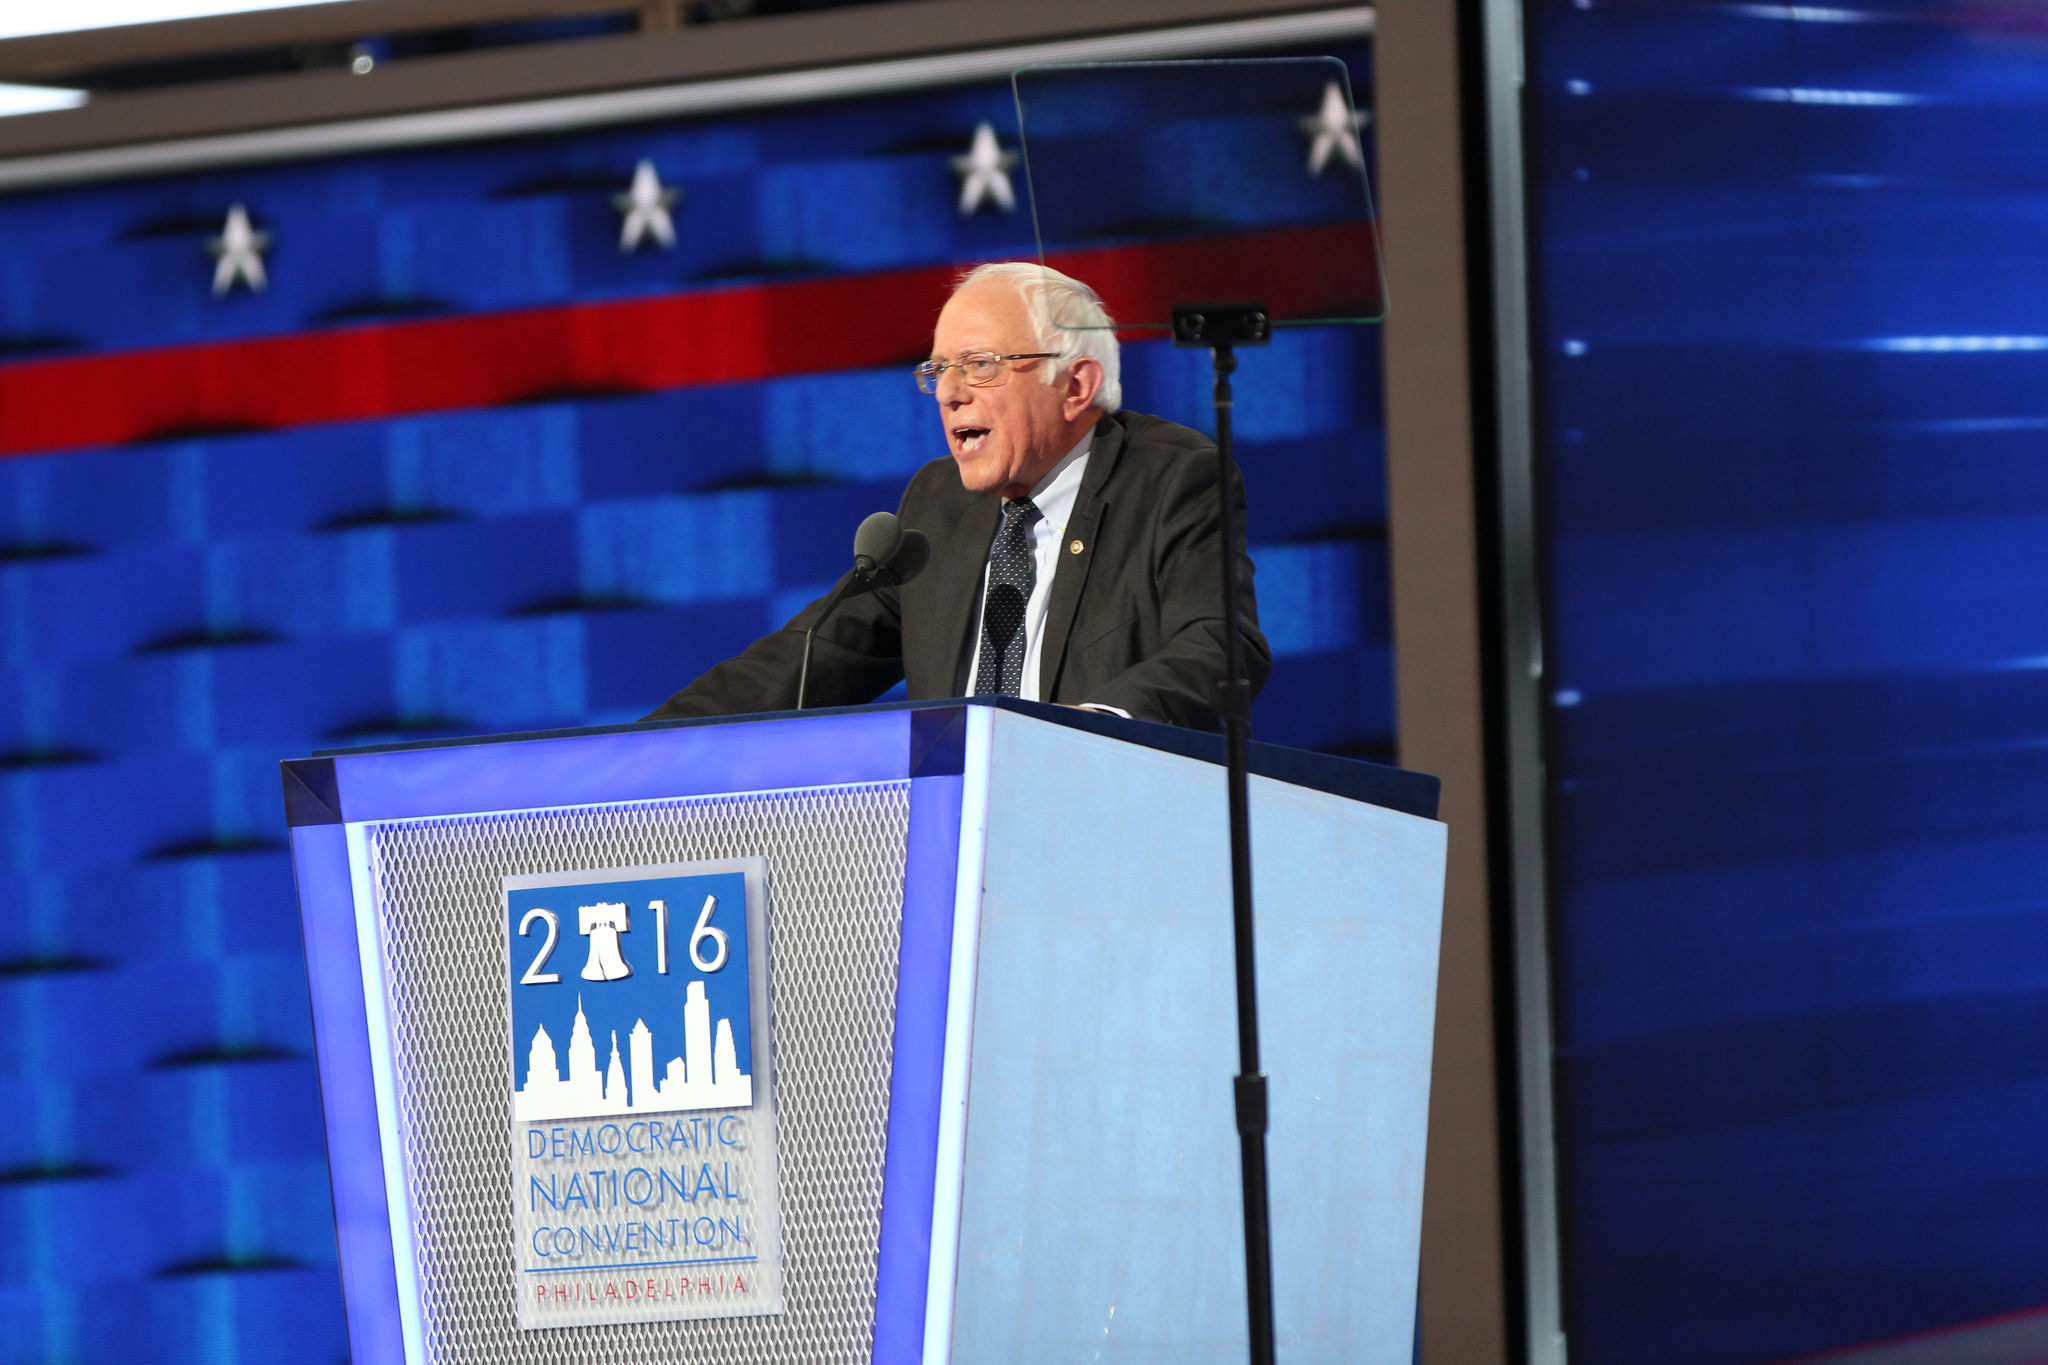 Bernie Sanders' spoke at the DNC to a raucous, supportive crowd.